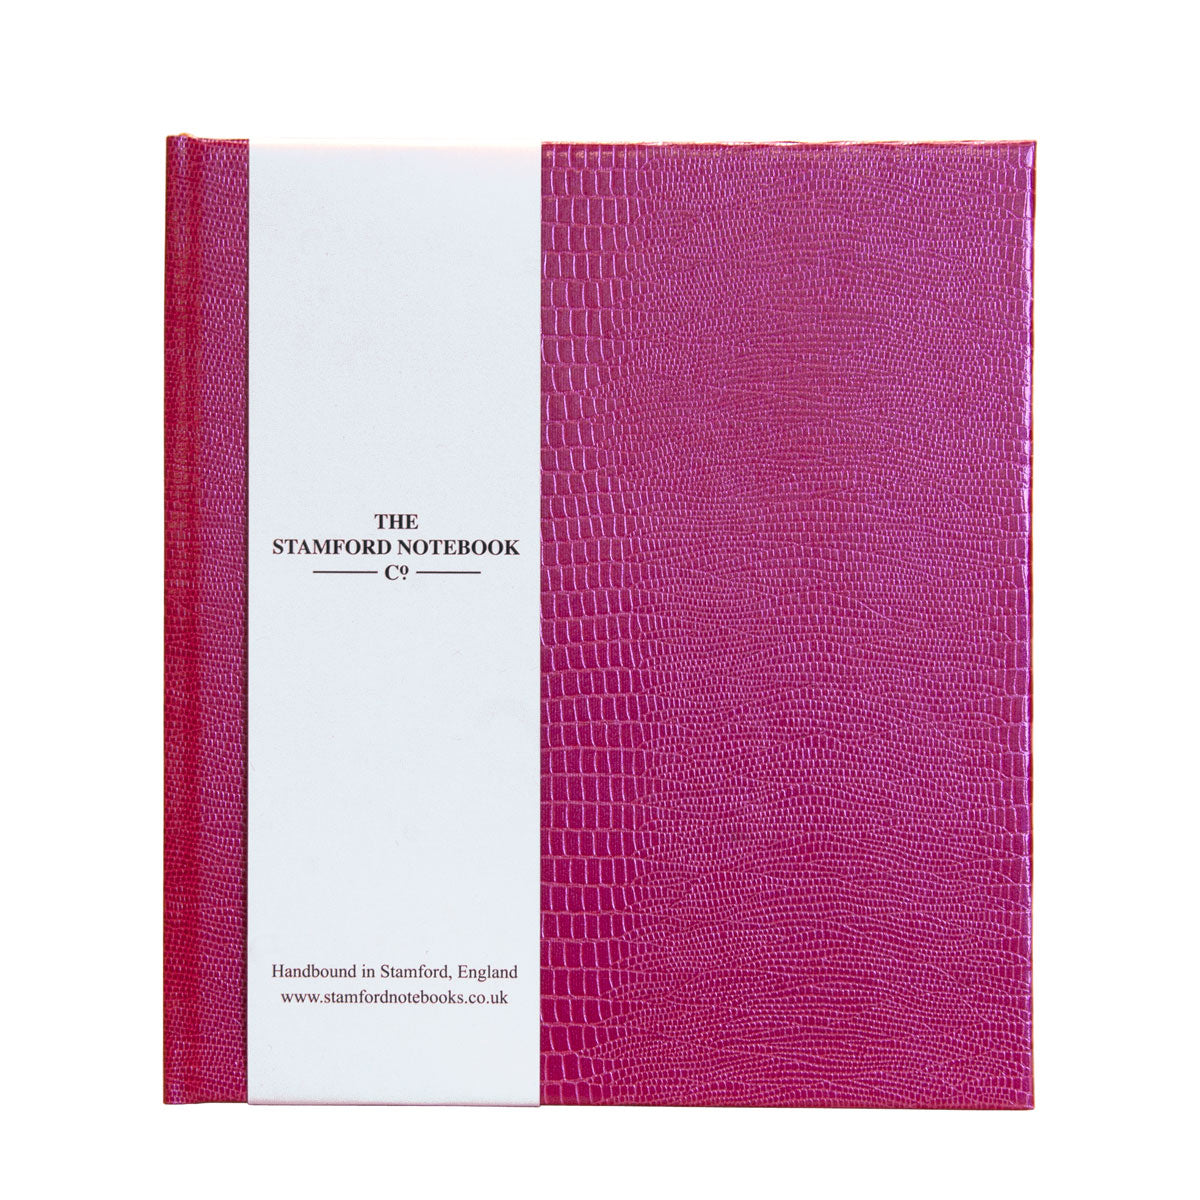 Fuxia Iguana embossed handbound notebook